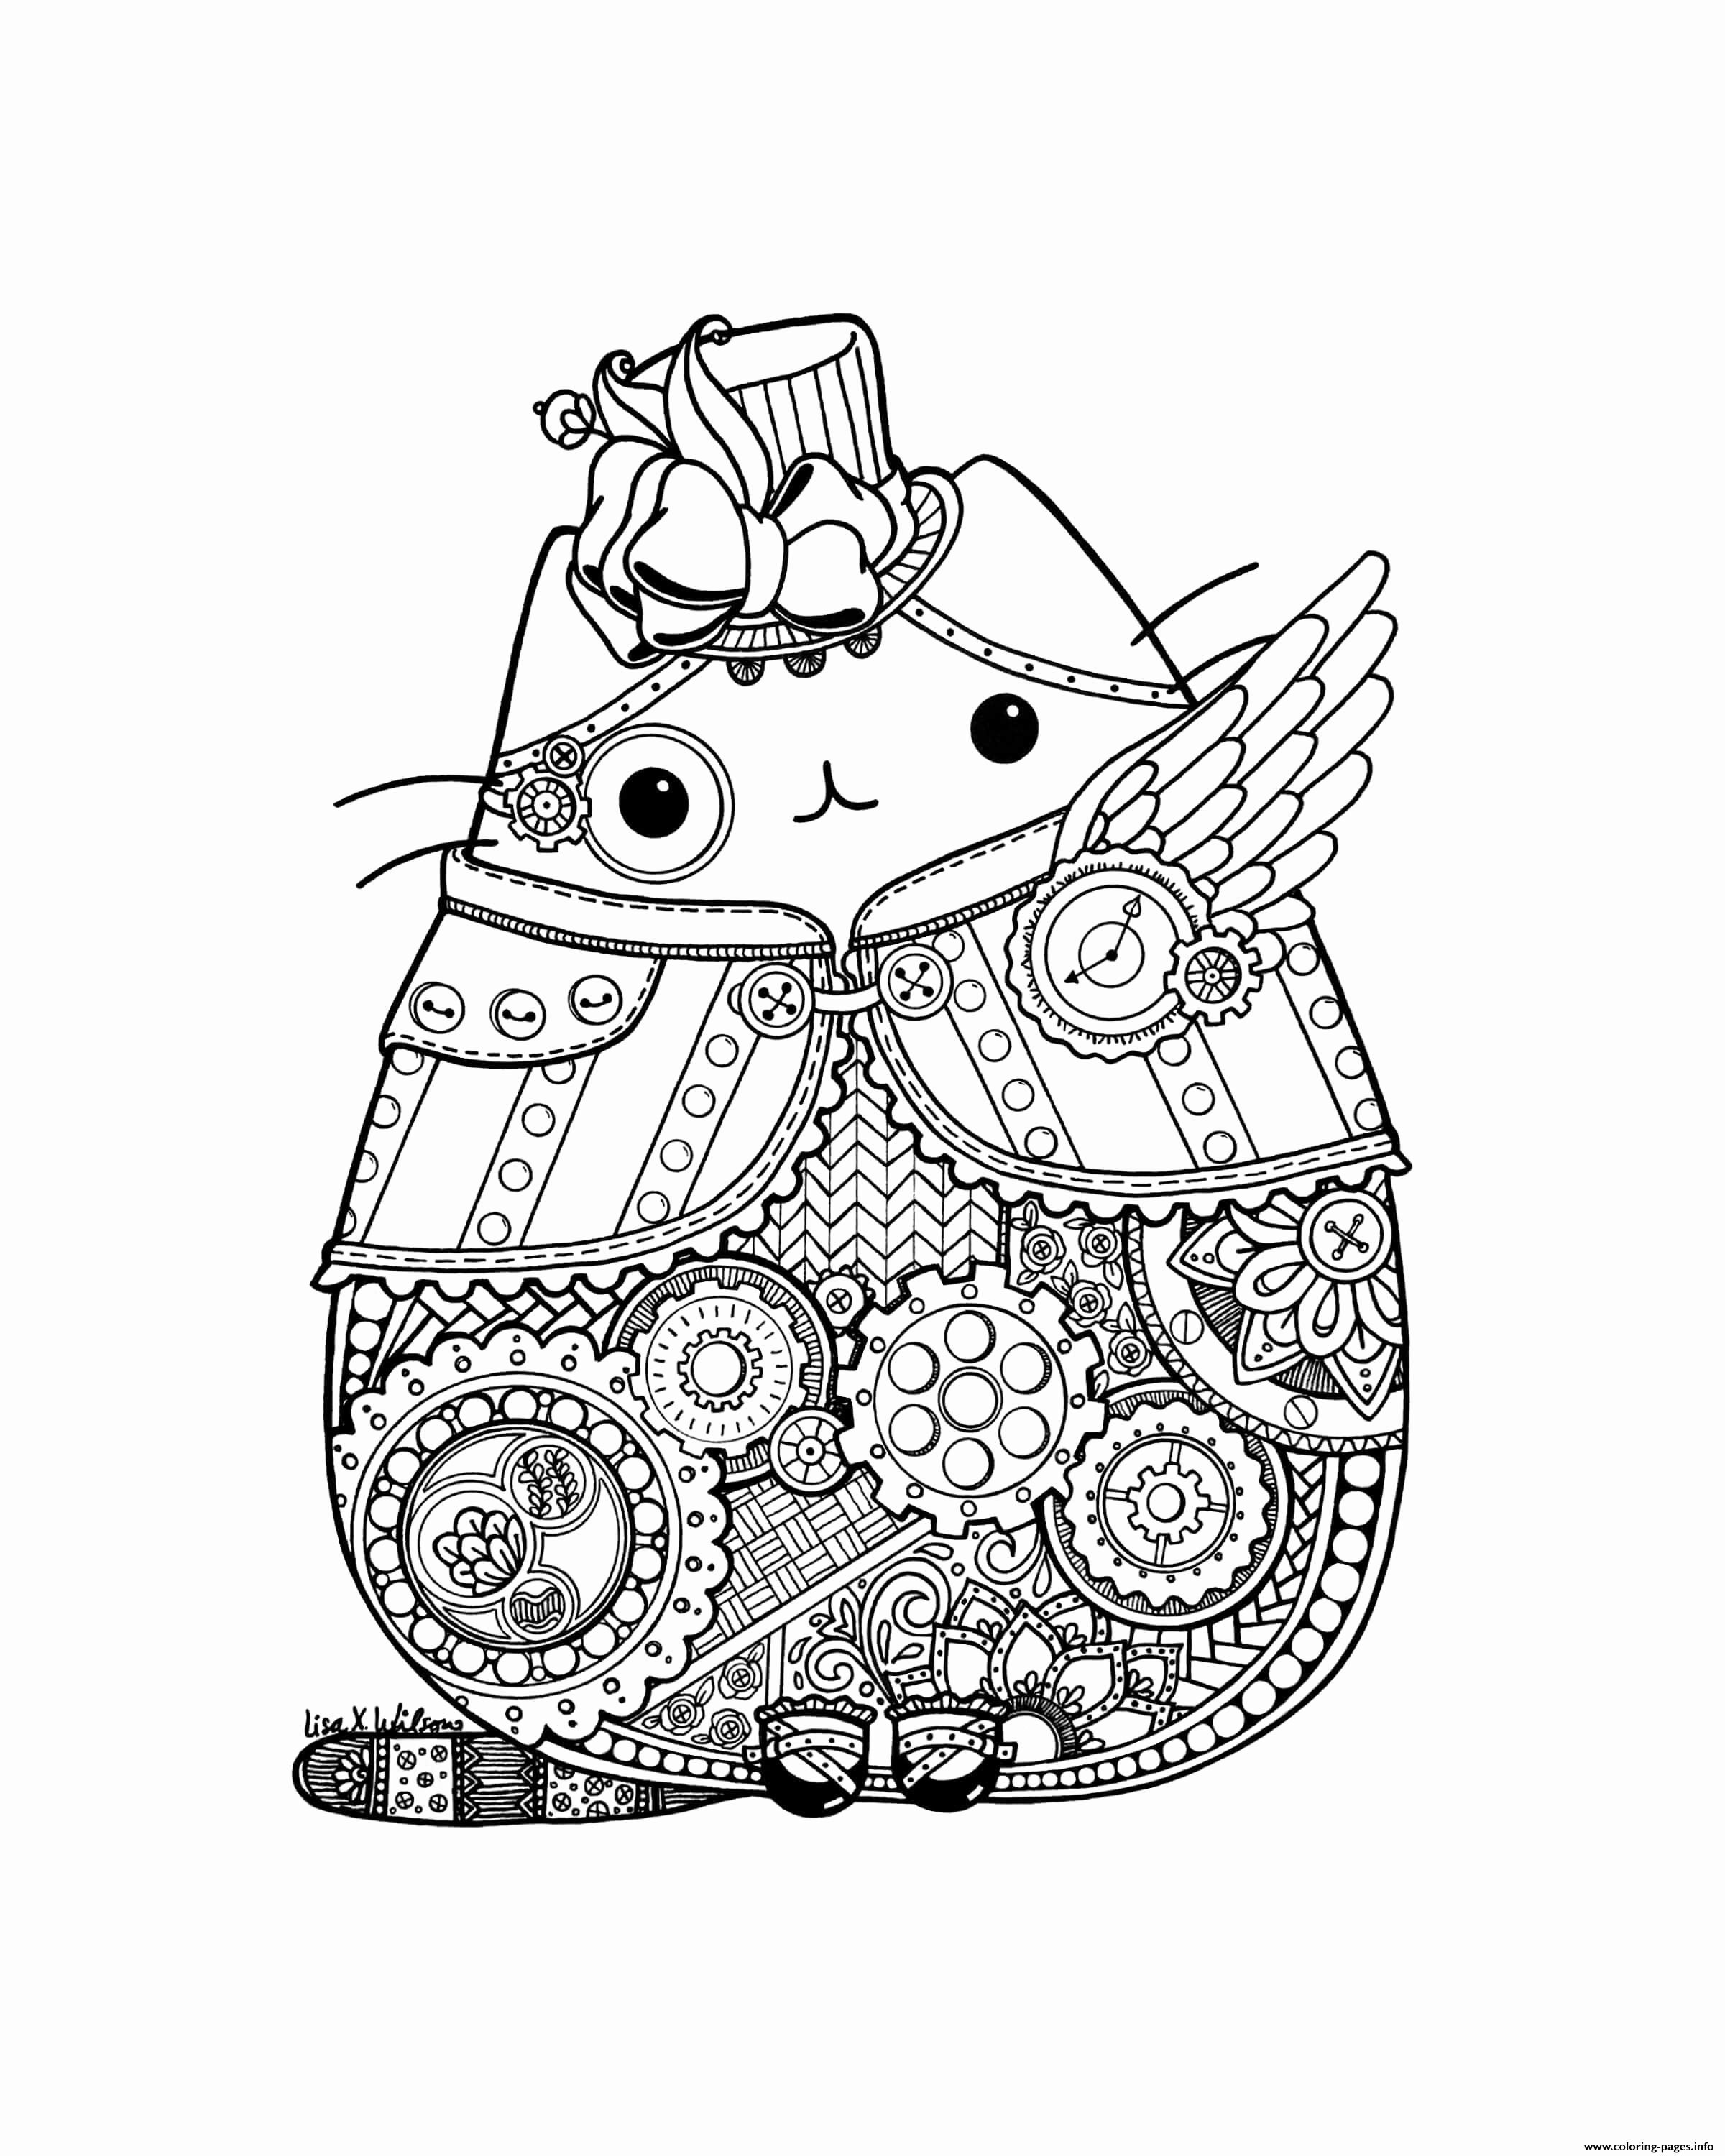 Zentangle Cat Coloring Pages Beautiful Coloring Pages 58 Zentangle Coloring Sheets Picture In 2020 Pusheen Coloring Pages Steampunk Coloring Cat Coloring Page [ 3000 x 2400 Pixel ]